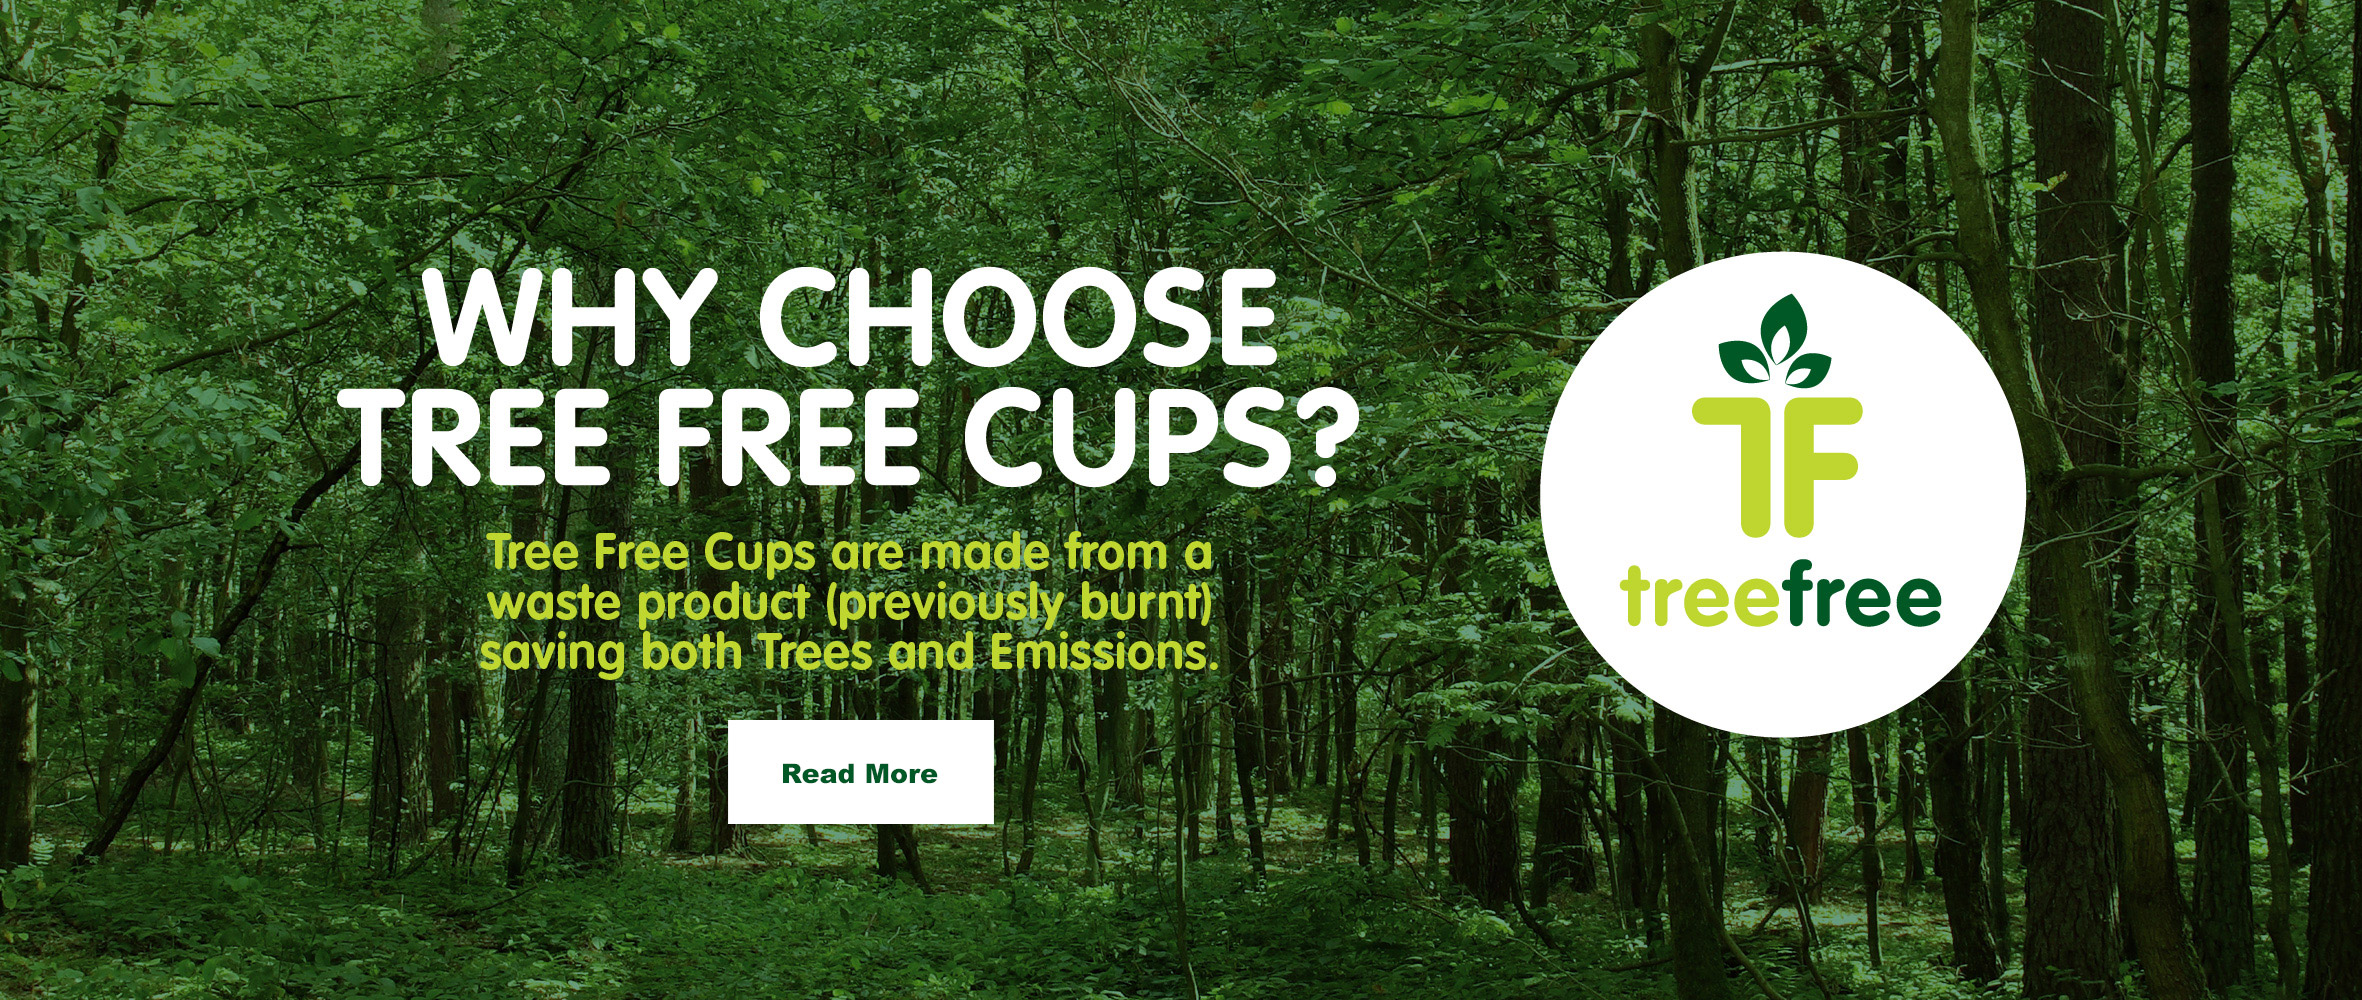 Why choose tree free cups?